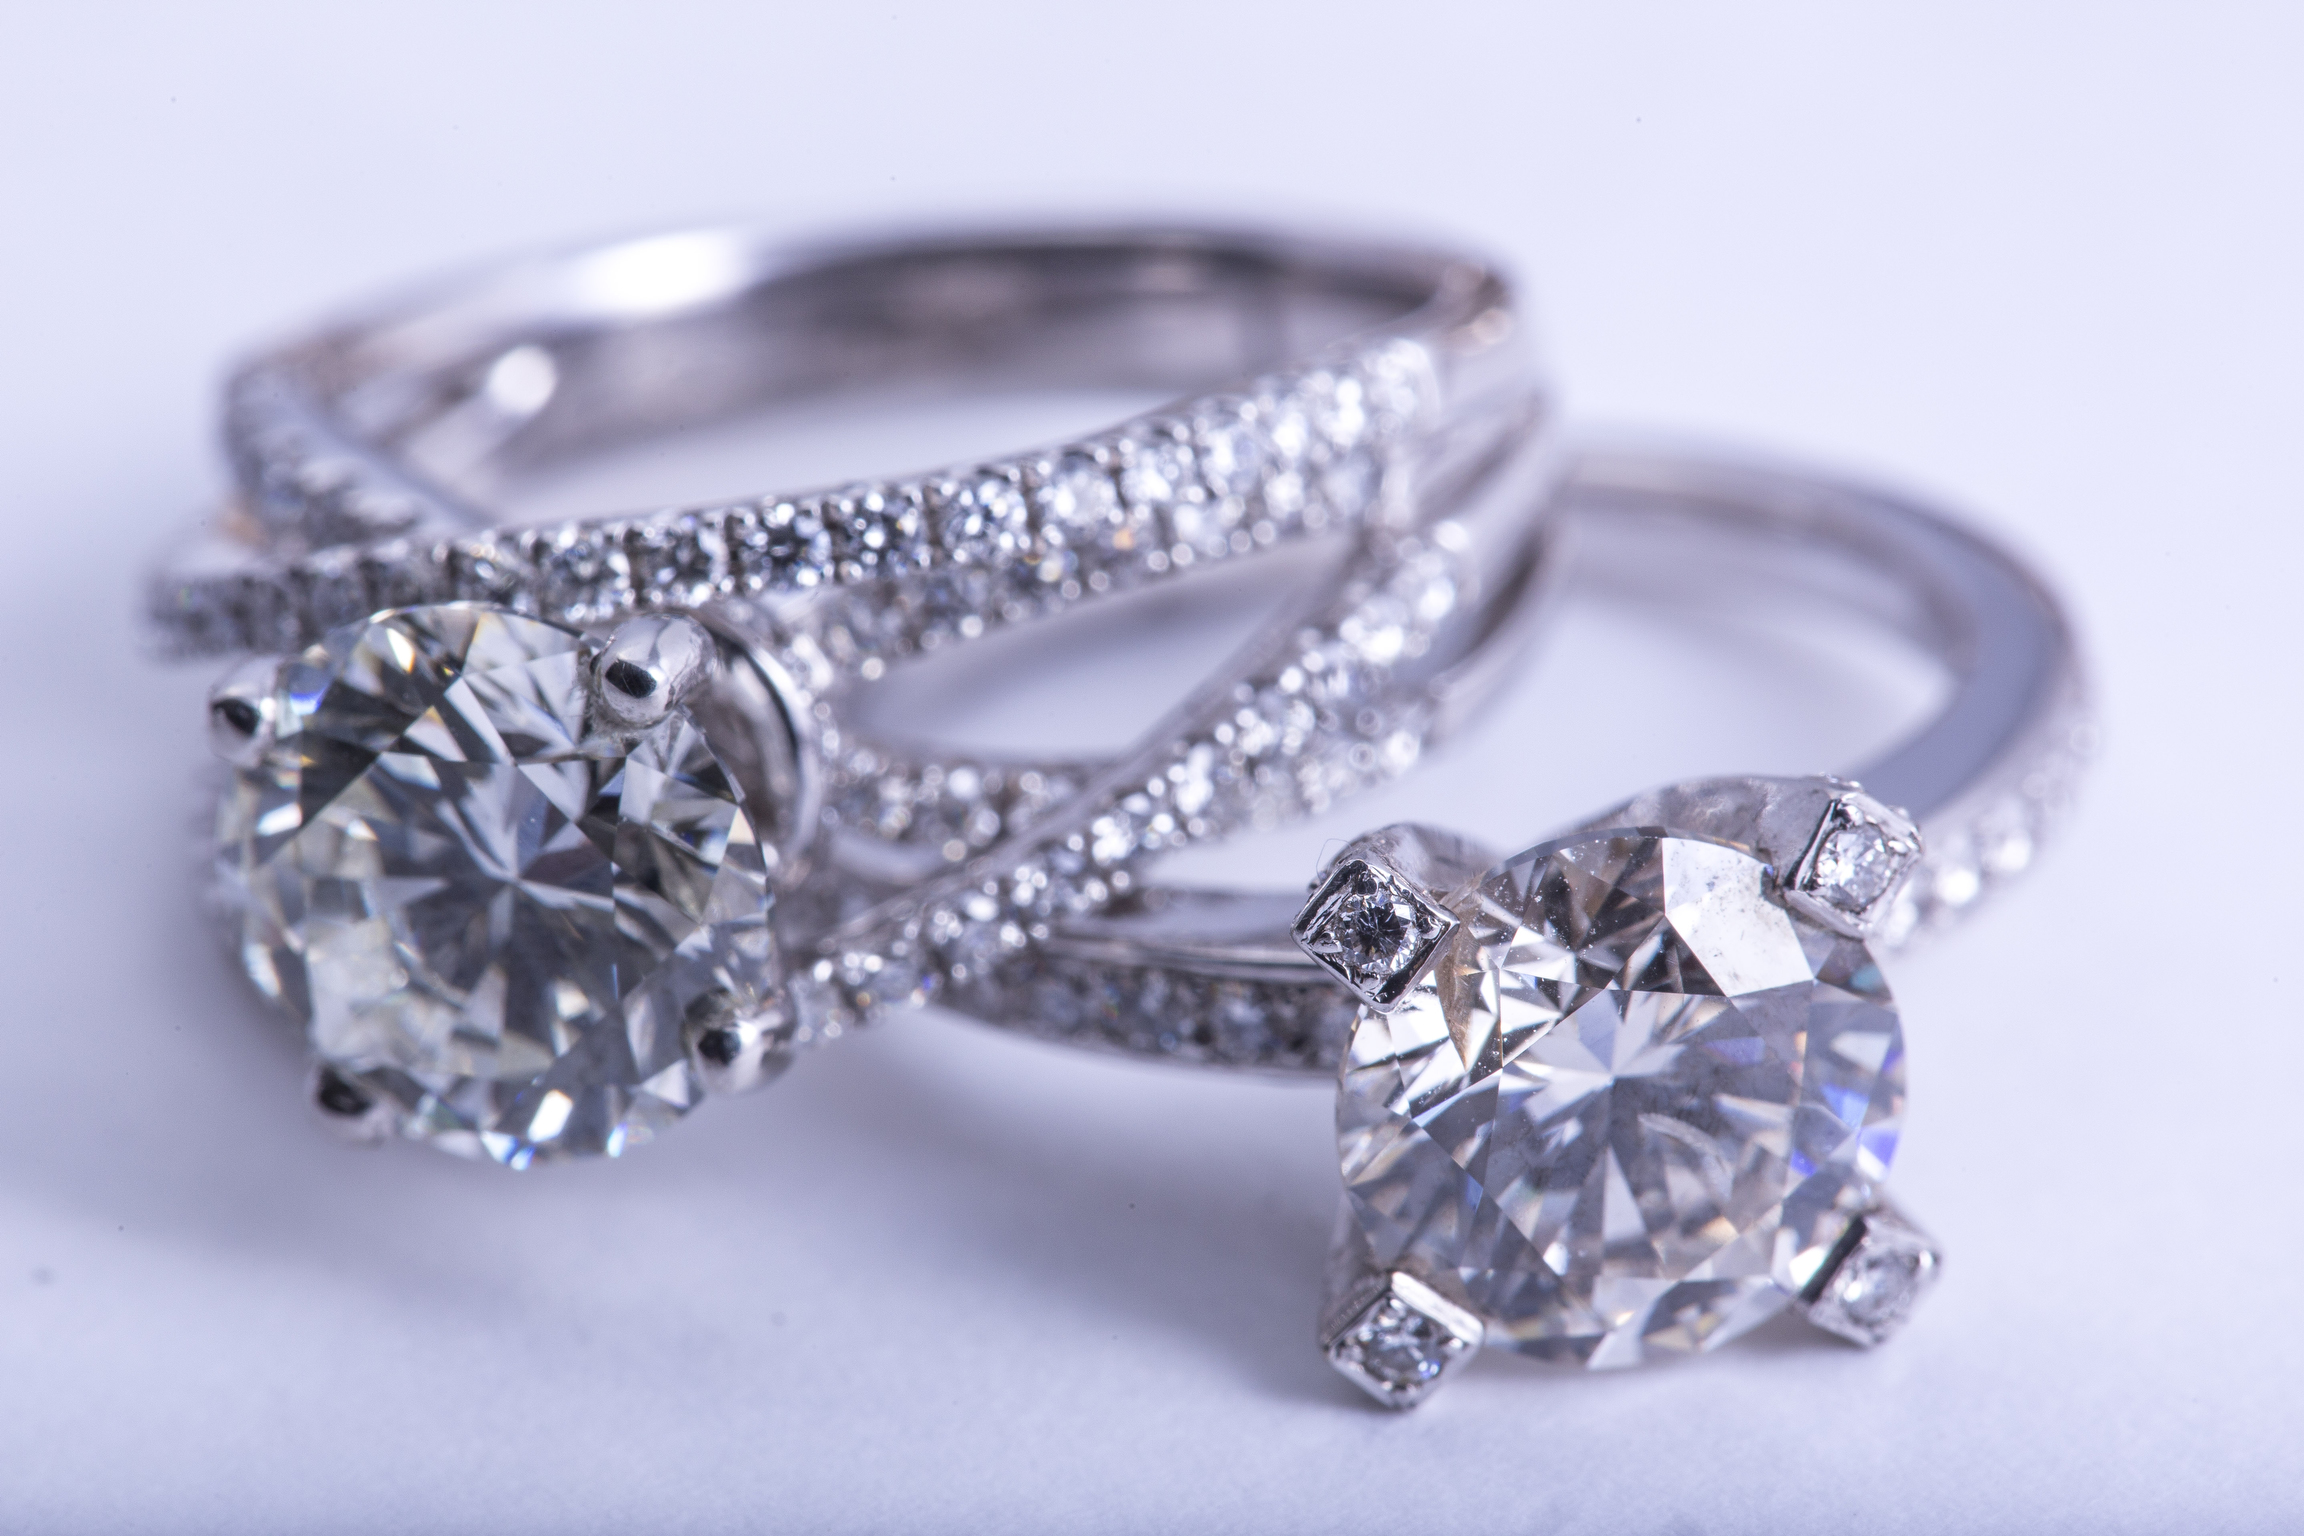 SMEs borrowing against diamond rings to invest in the business